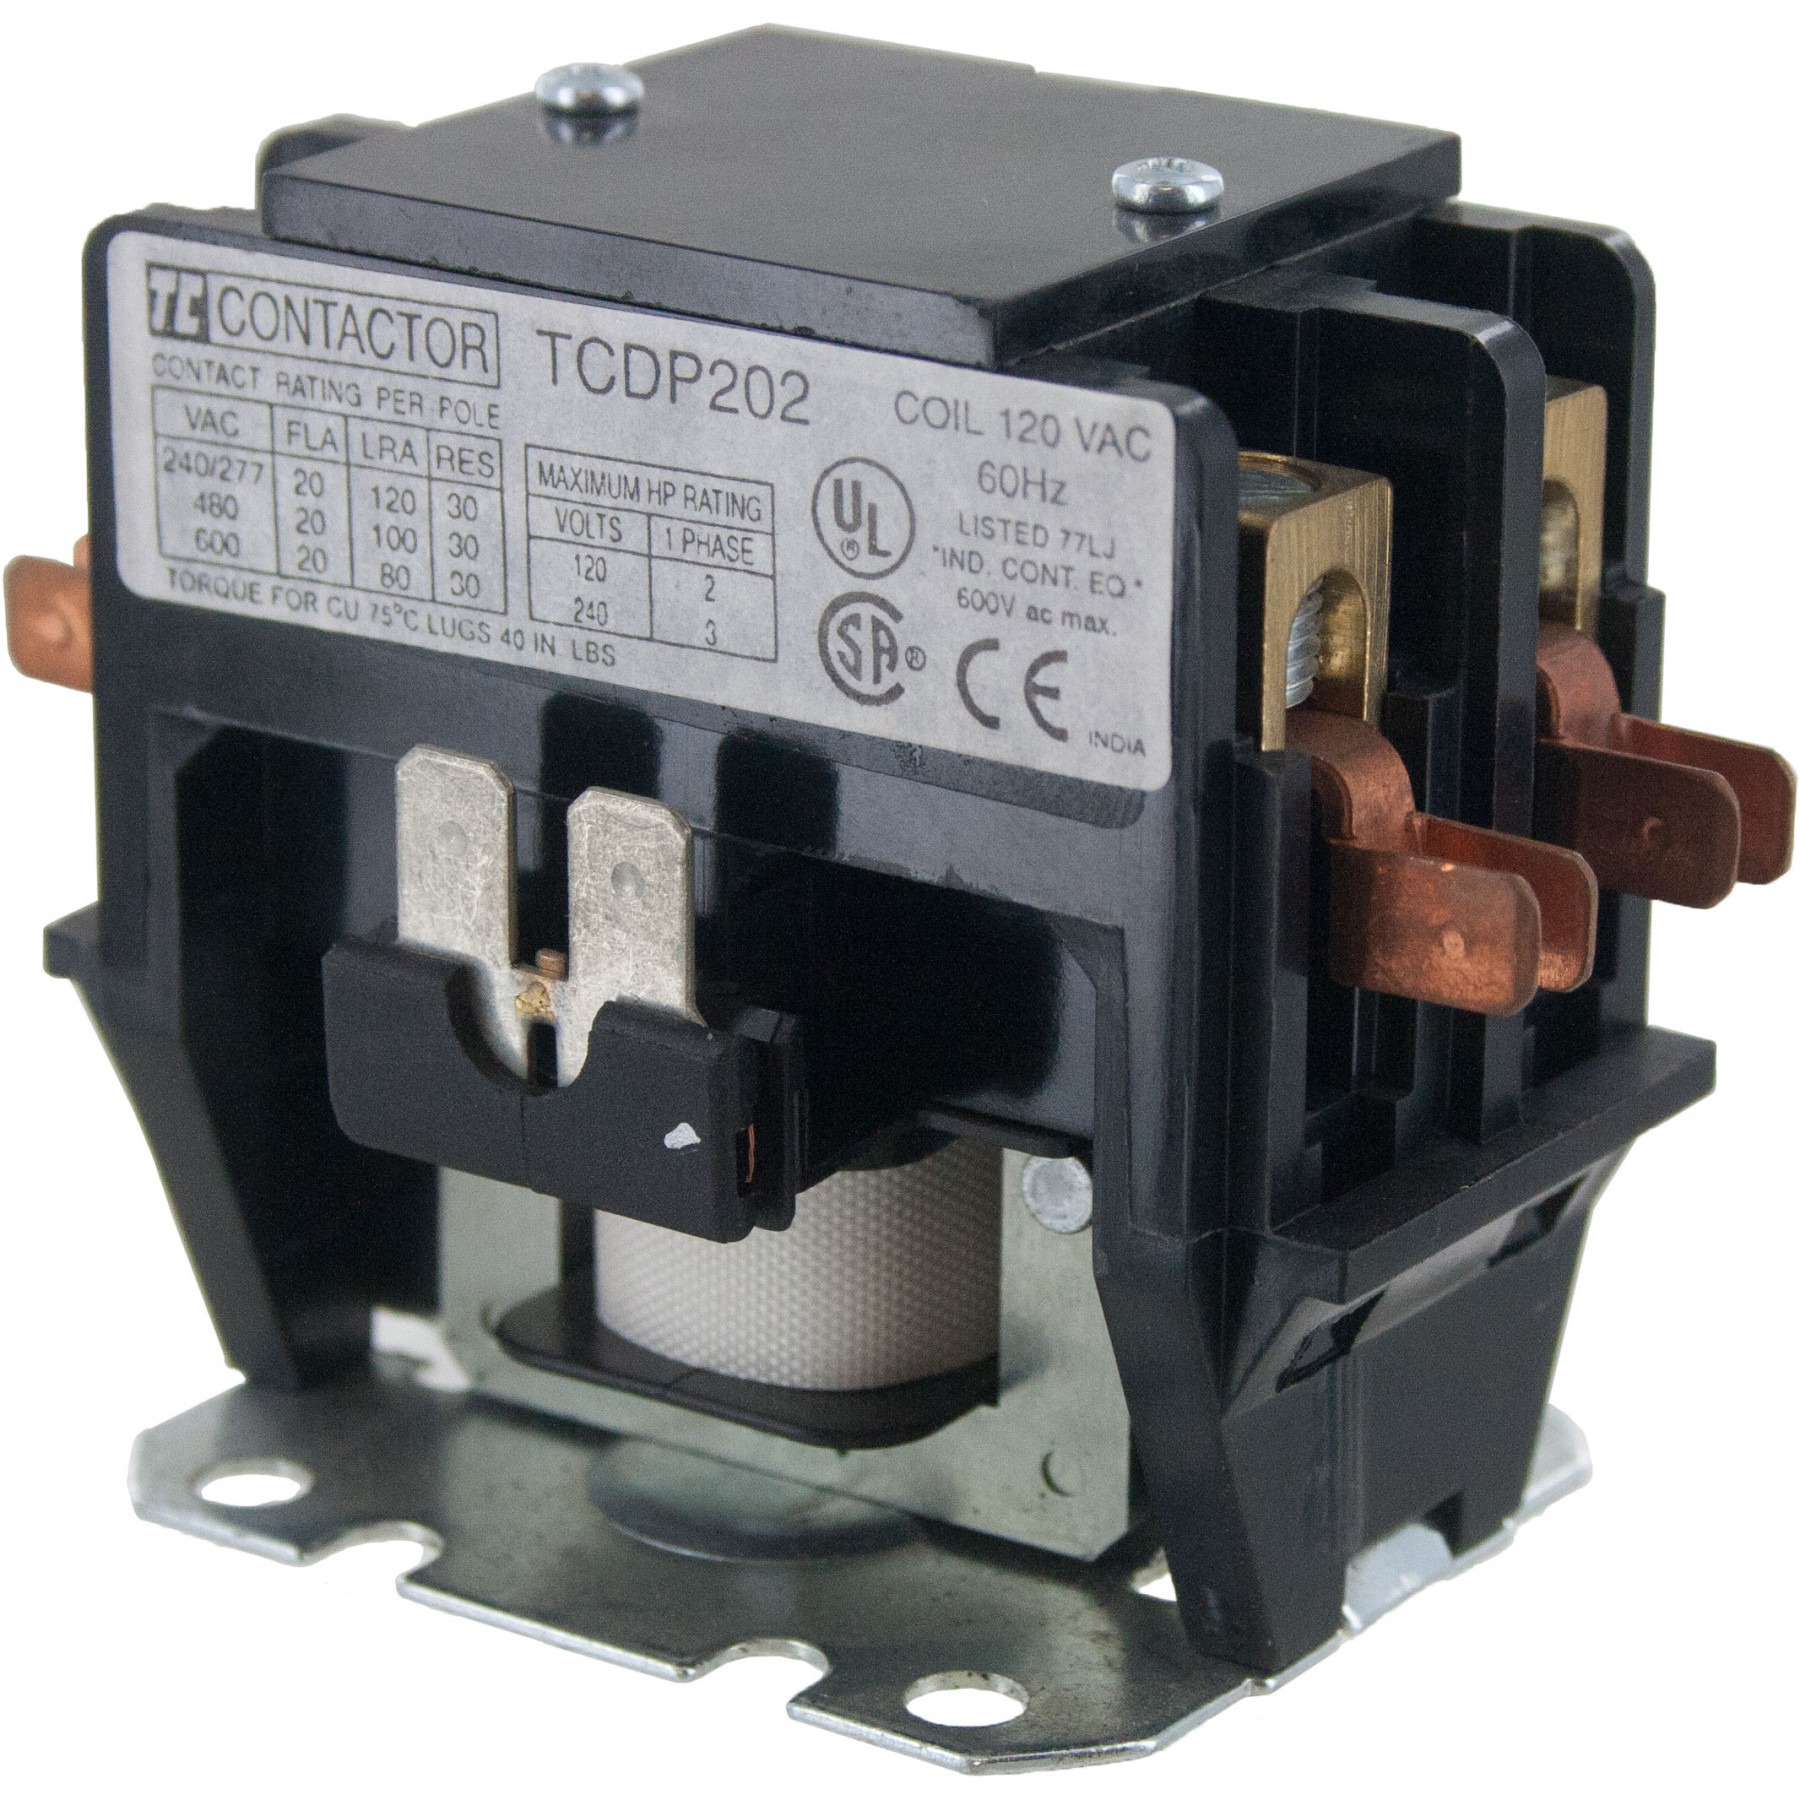 Awesome Contactor Connections Pictures - Electrical and Wiring ...